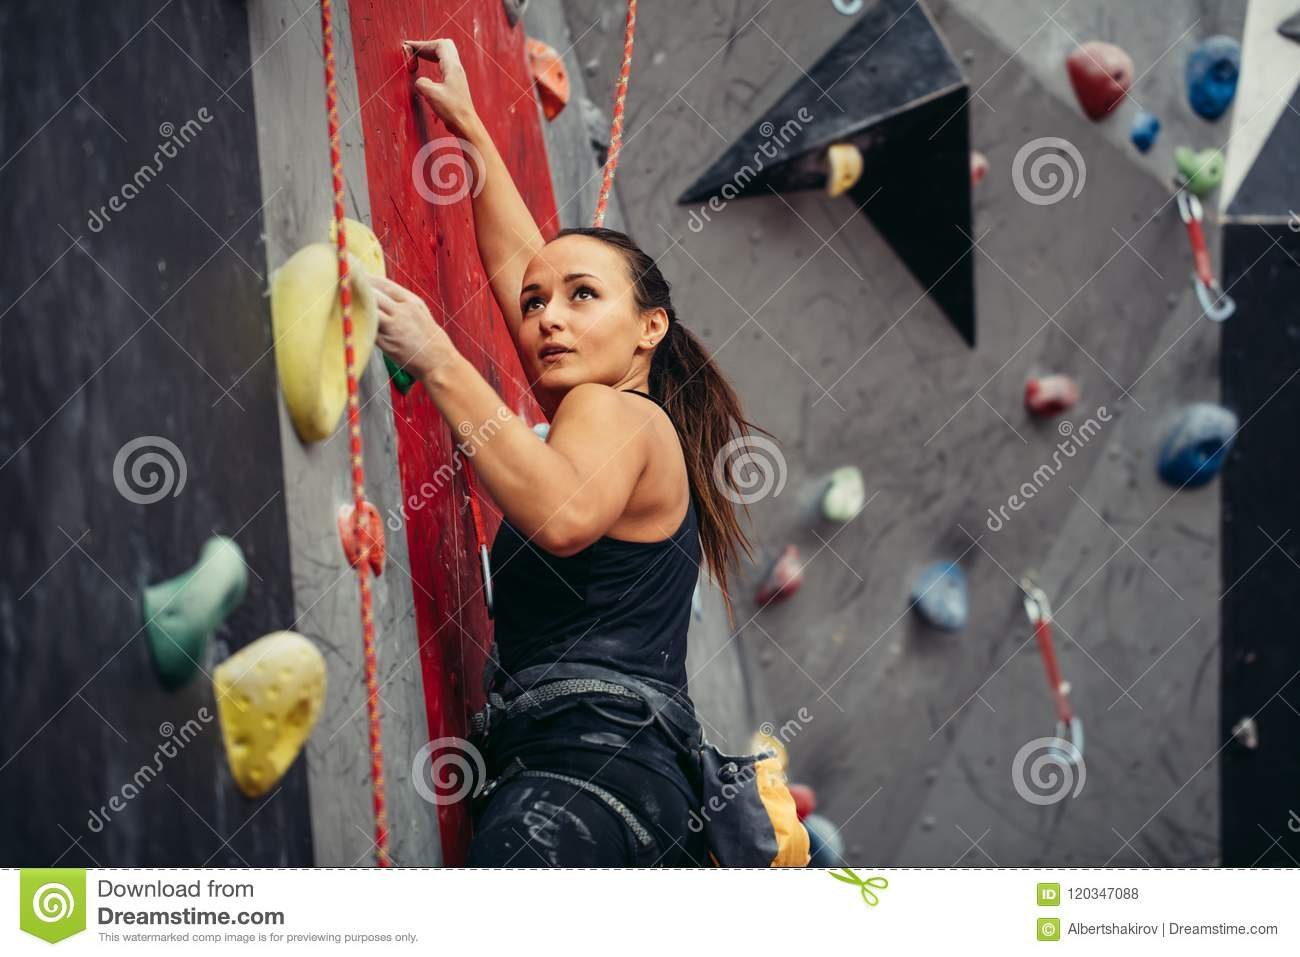 Extreme sport, stress relief, bouldering, people and healthy lifestyle concept.